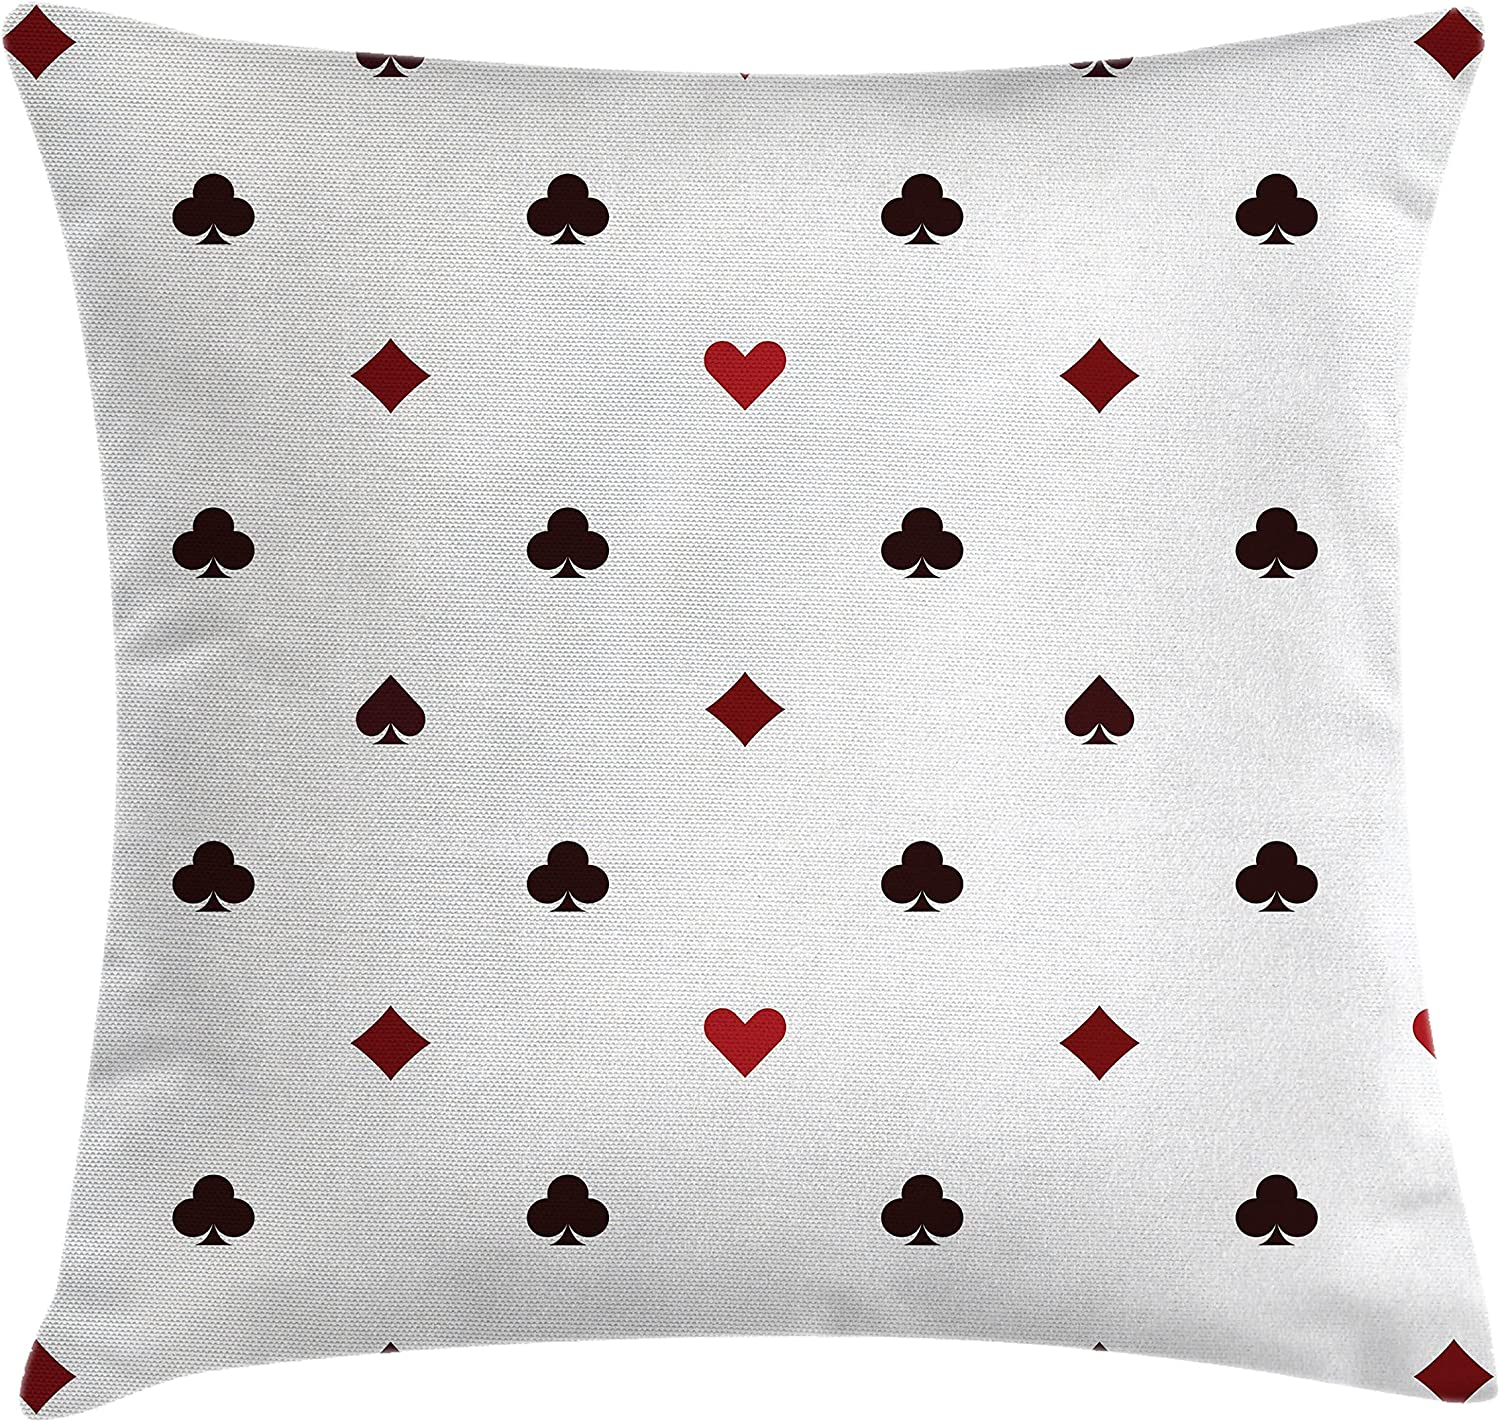 """Ambesonne Casino Throw Pillow Cushion Cover, Gambling Club Lifestyle Fortune Luck Advertise Minimalistic Design Artwork, Decorative Square Accent Pillow Case, 18"""" X 18"""", Maroon Ruby"""